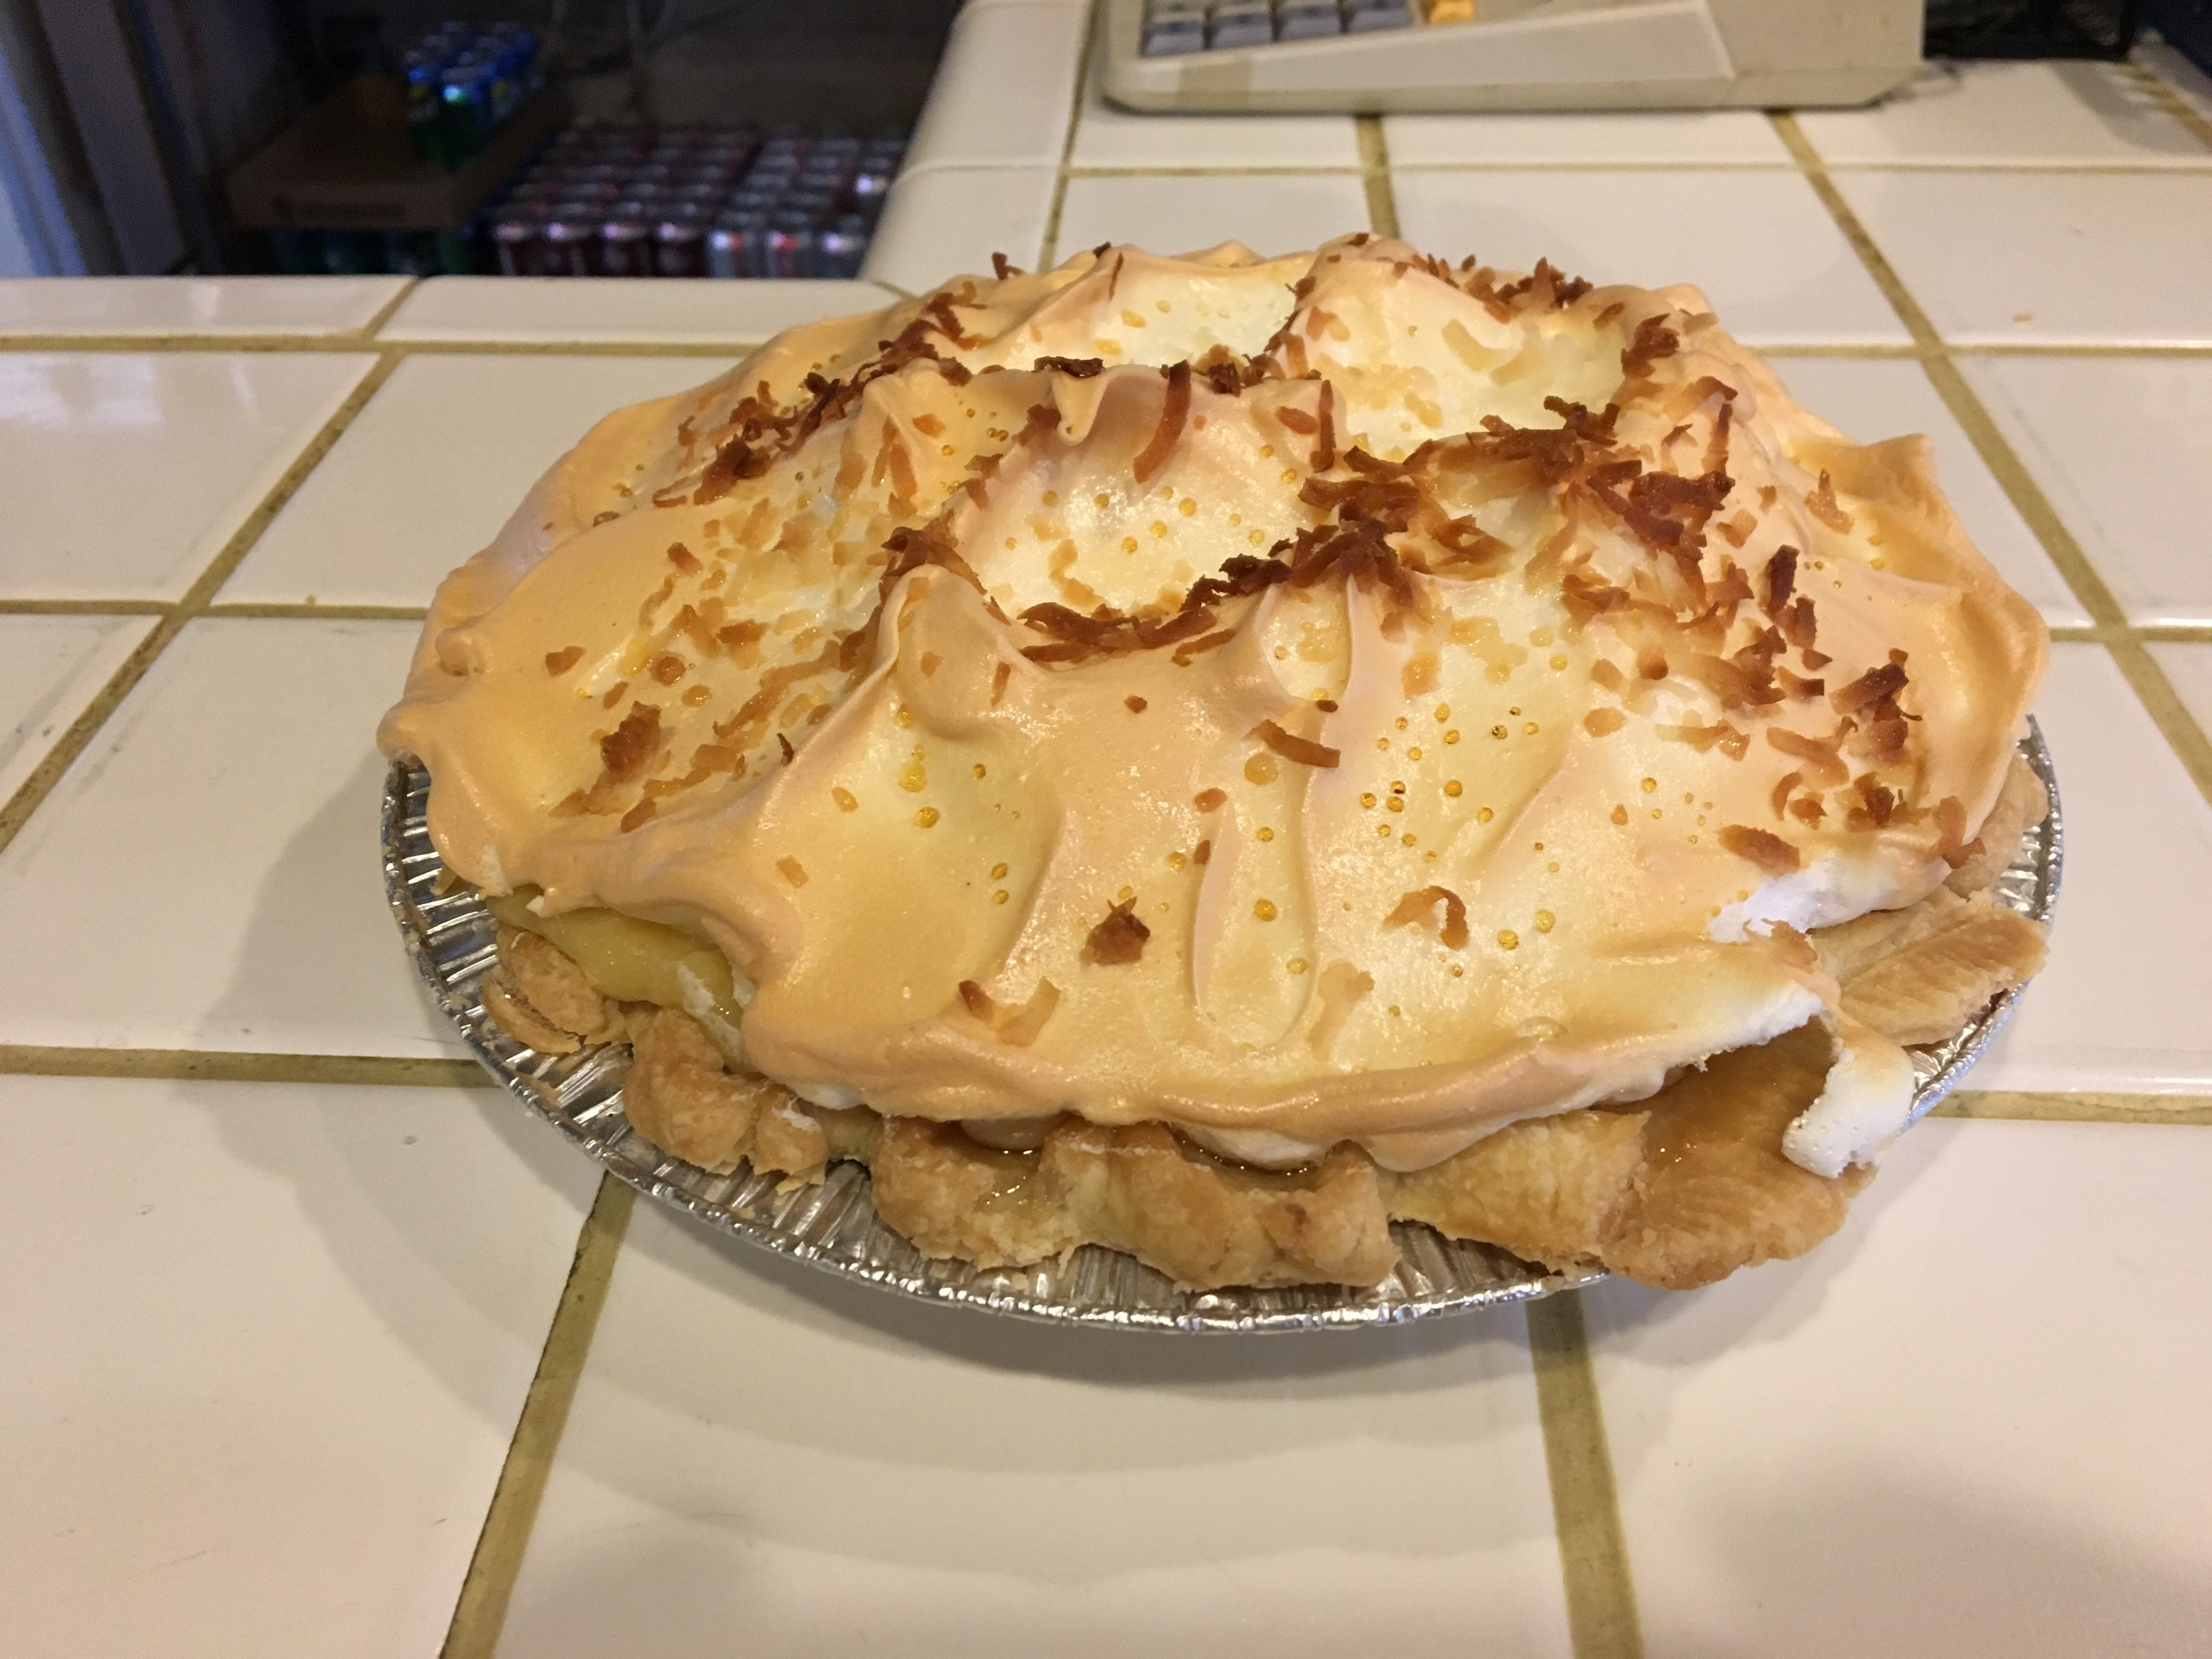 Coconut cream pie goes quick at Miller's Grocery in Christiana.